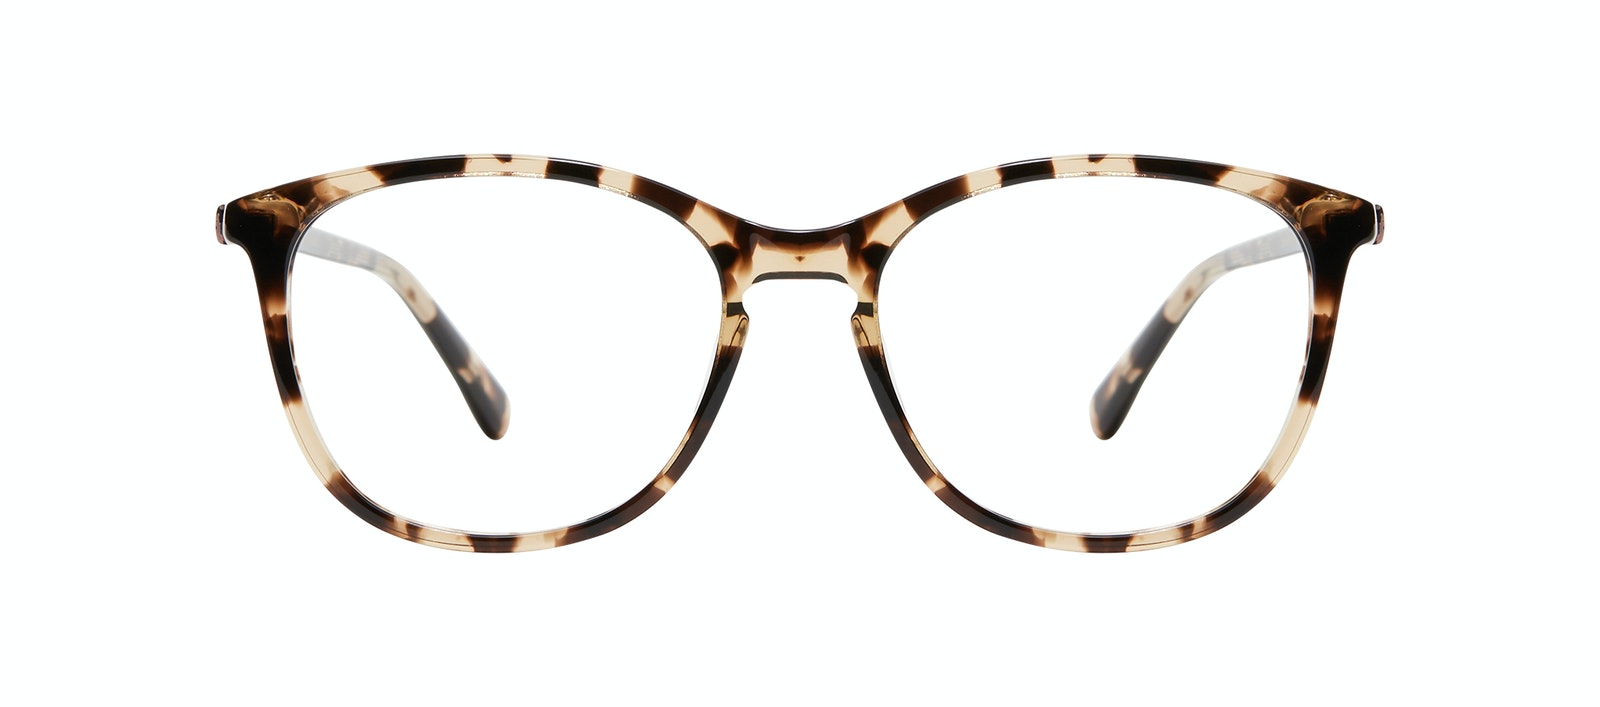 Affordable Fashion Glasses Rectangle Square Round Eyeglasses Women Nadine S Snake Skin Front